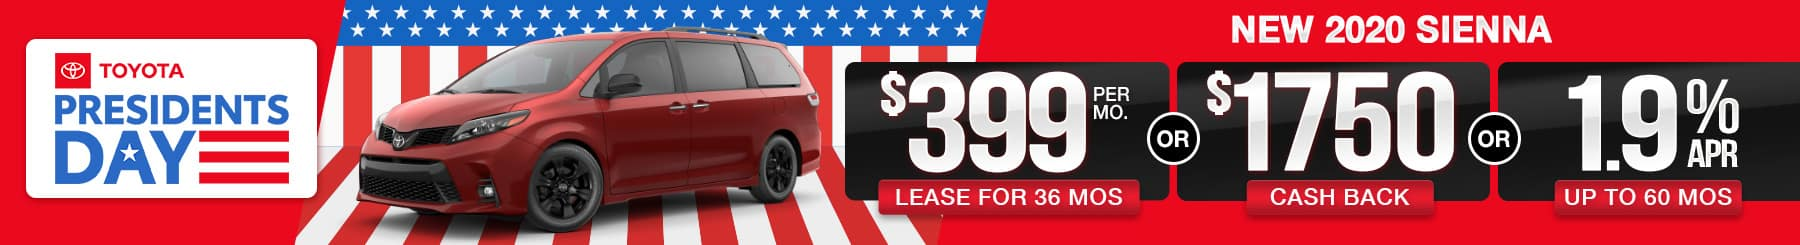 2020 Sienna Lease or Finance Offers